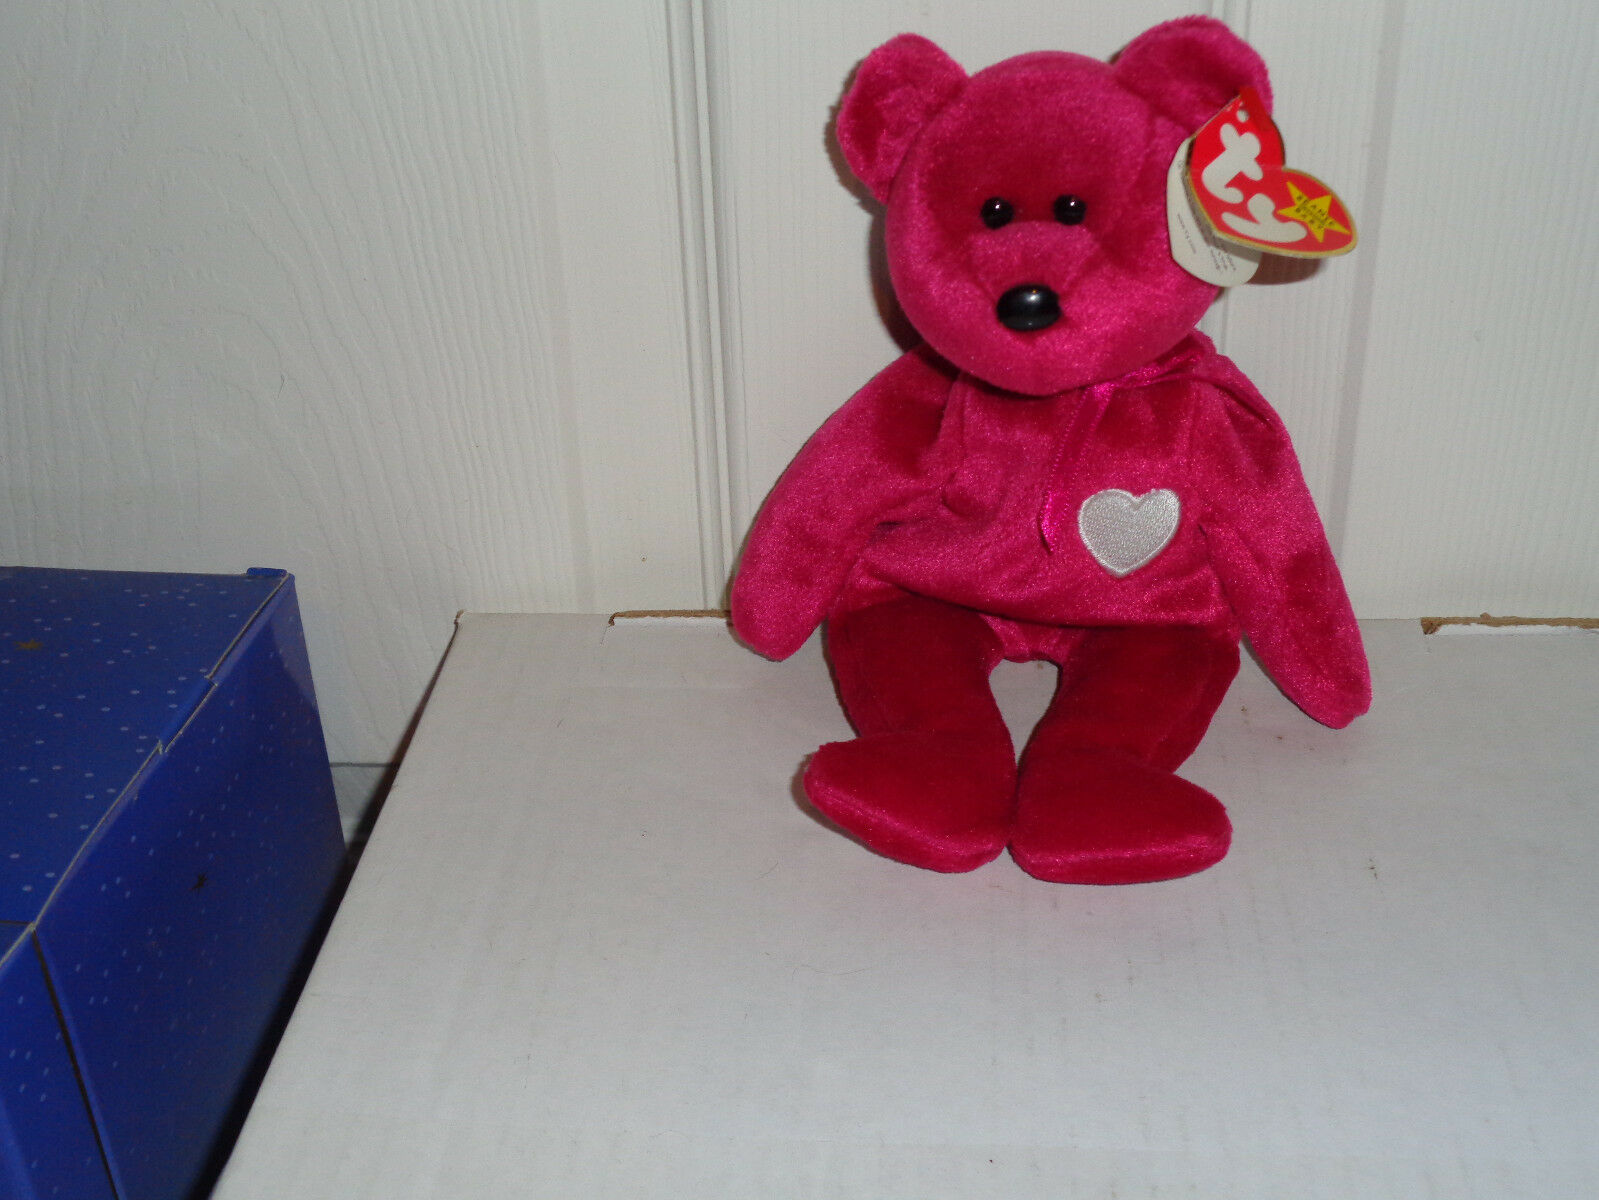 1998 Valentina Beanie Baby with Errors- Very Good Condition